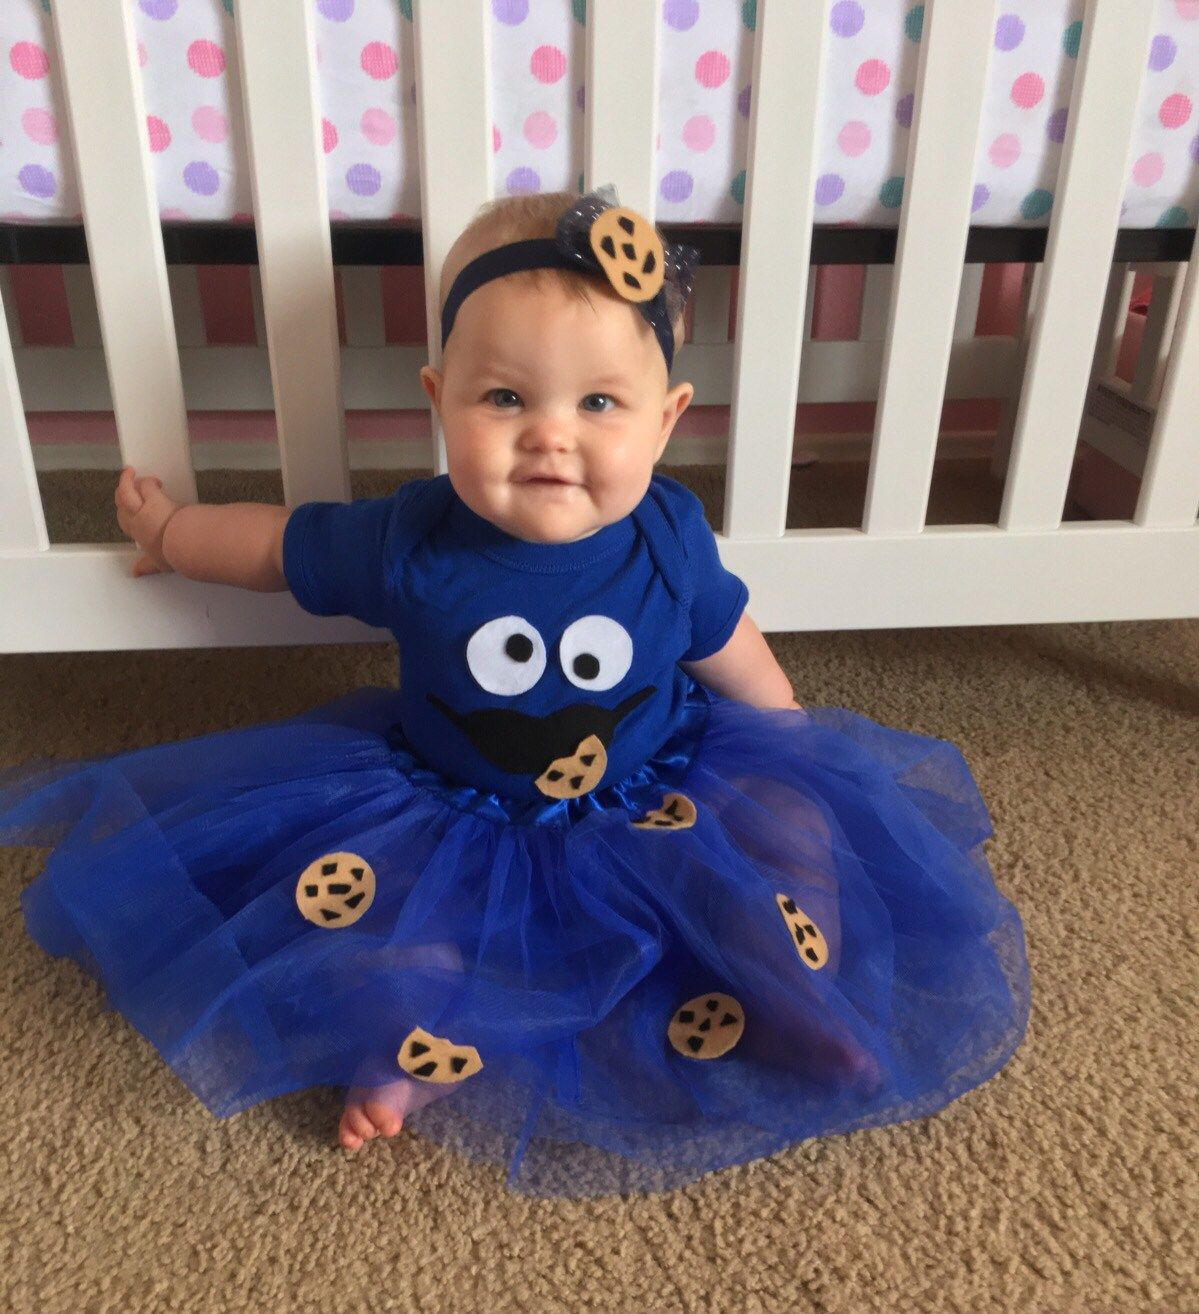 Diy Cookie Monster Costume Baby Toddler No Sewing Required Diary Of A So Cal Mama Baby Girl Halloween Costumes Cookie Monster Costume Baby Halloween